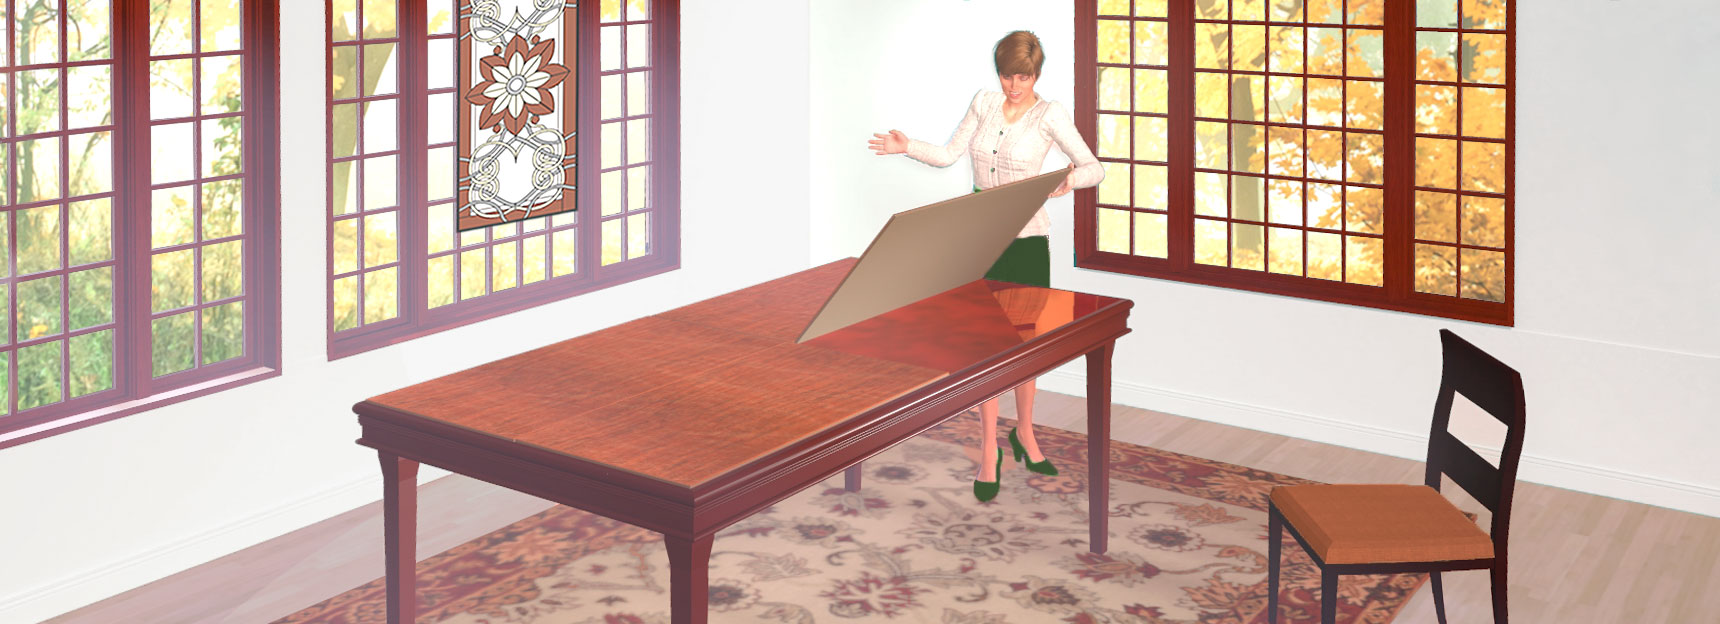 Superior Table Pad Co Inc Table Pads Dining Table Covers - Table pads denver